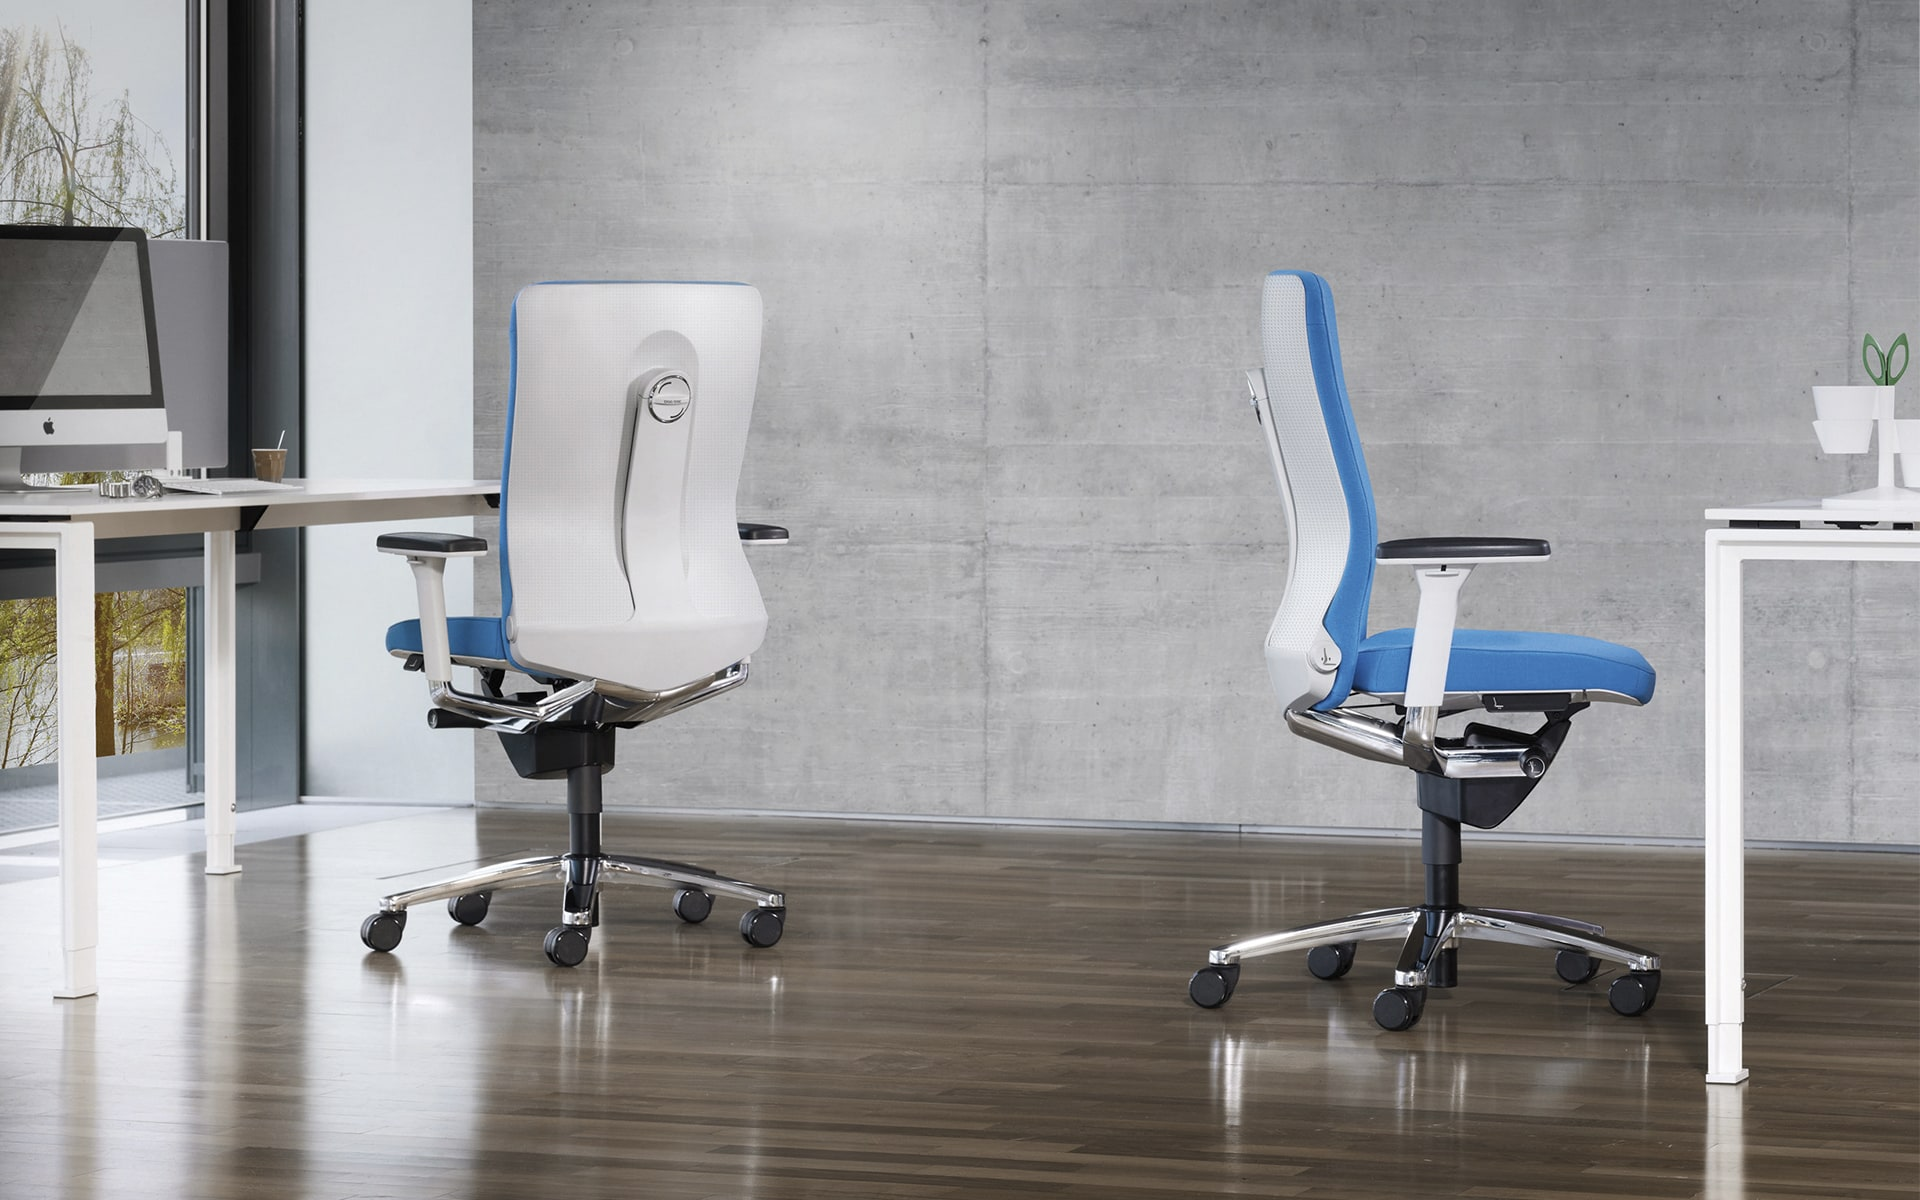 König + Neurath Lamiga office chairs by ITO Design with white backrests and blue upholstery in minimalist office